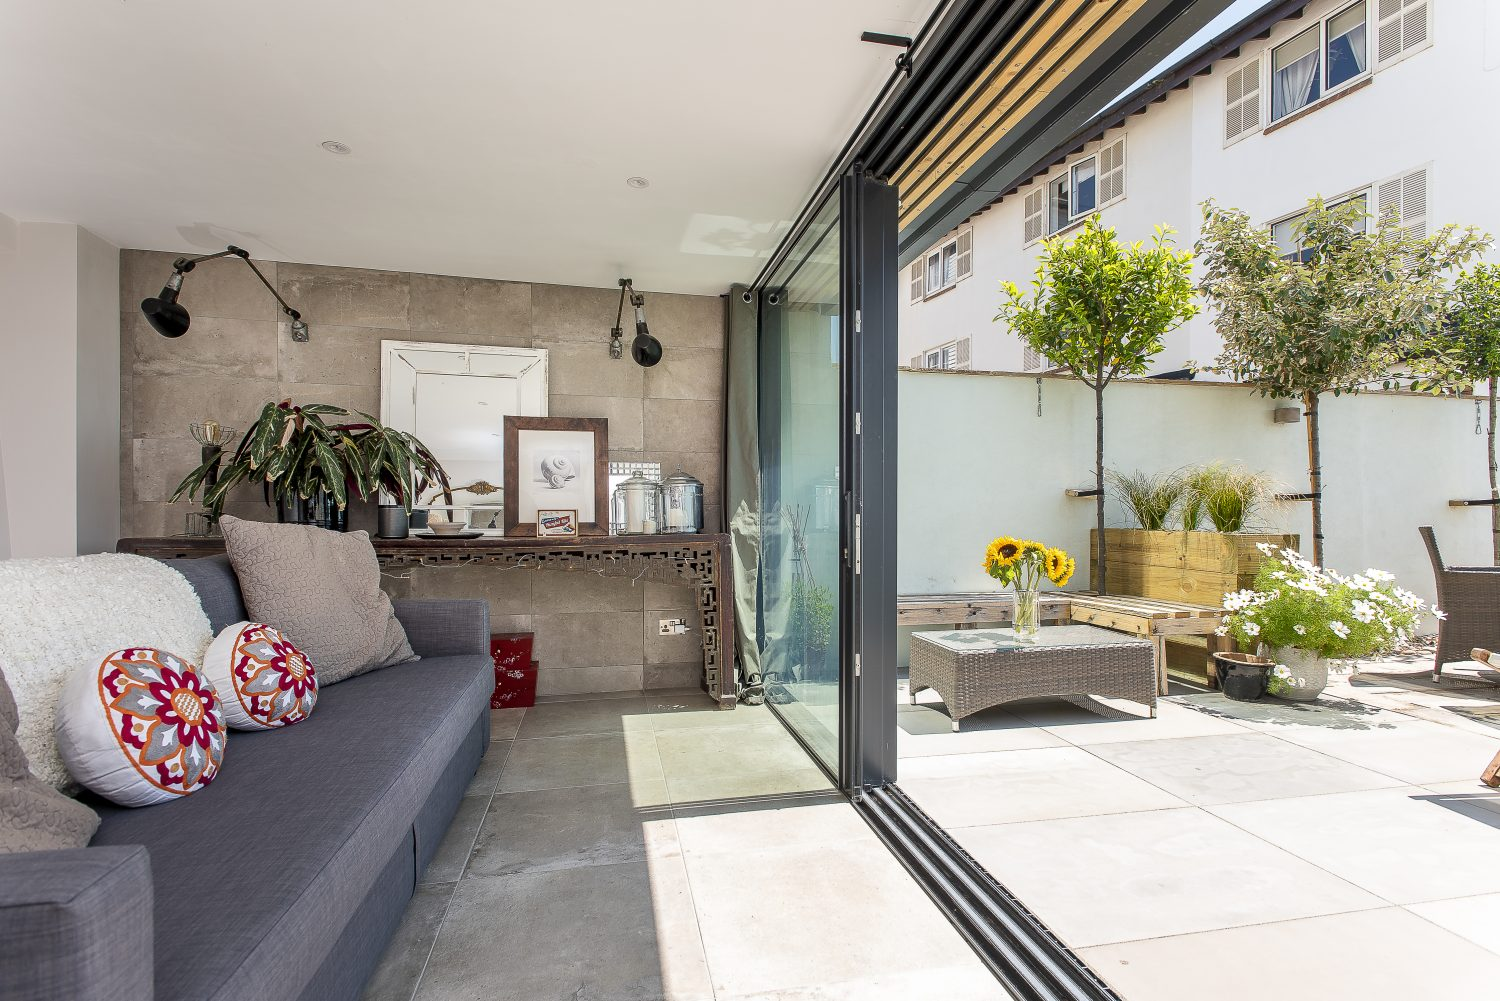 Sliding glass doors lead out from the mini-gym and garden room downstairs into the garden across porcelain paving, carefully chosen to blend the divide between the inside and the terrace